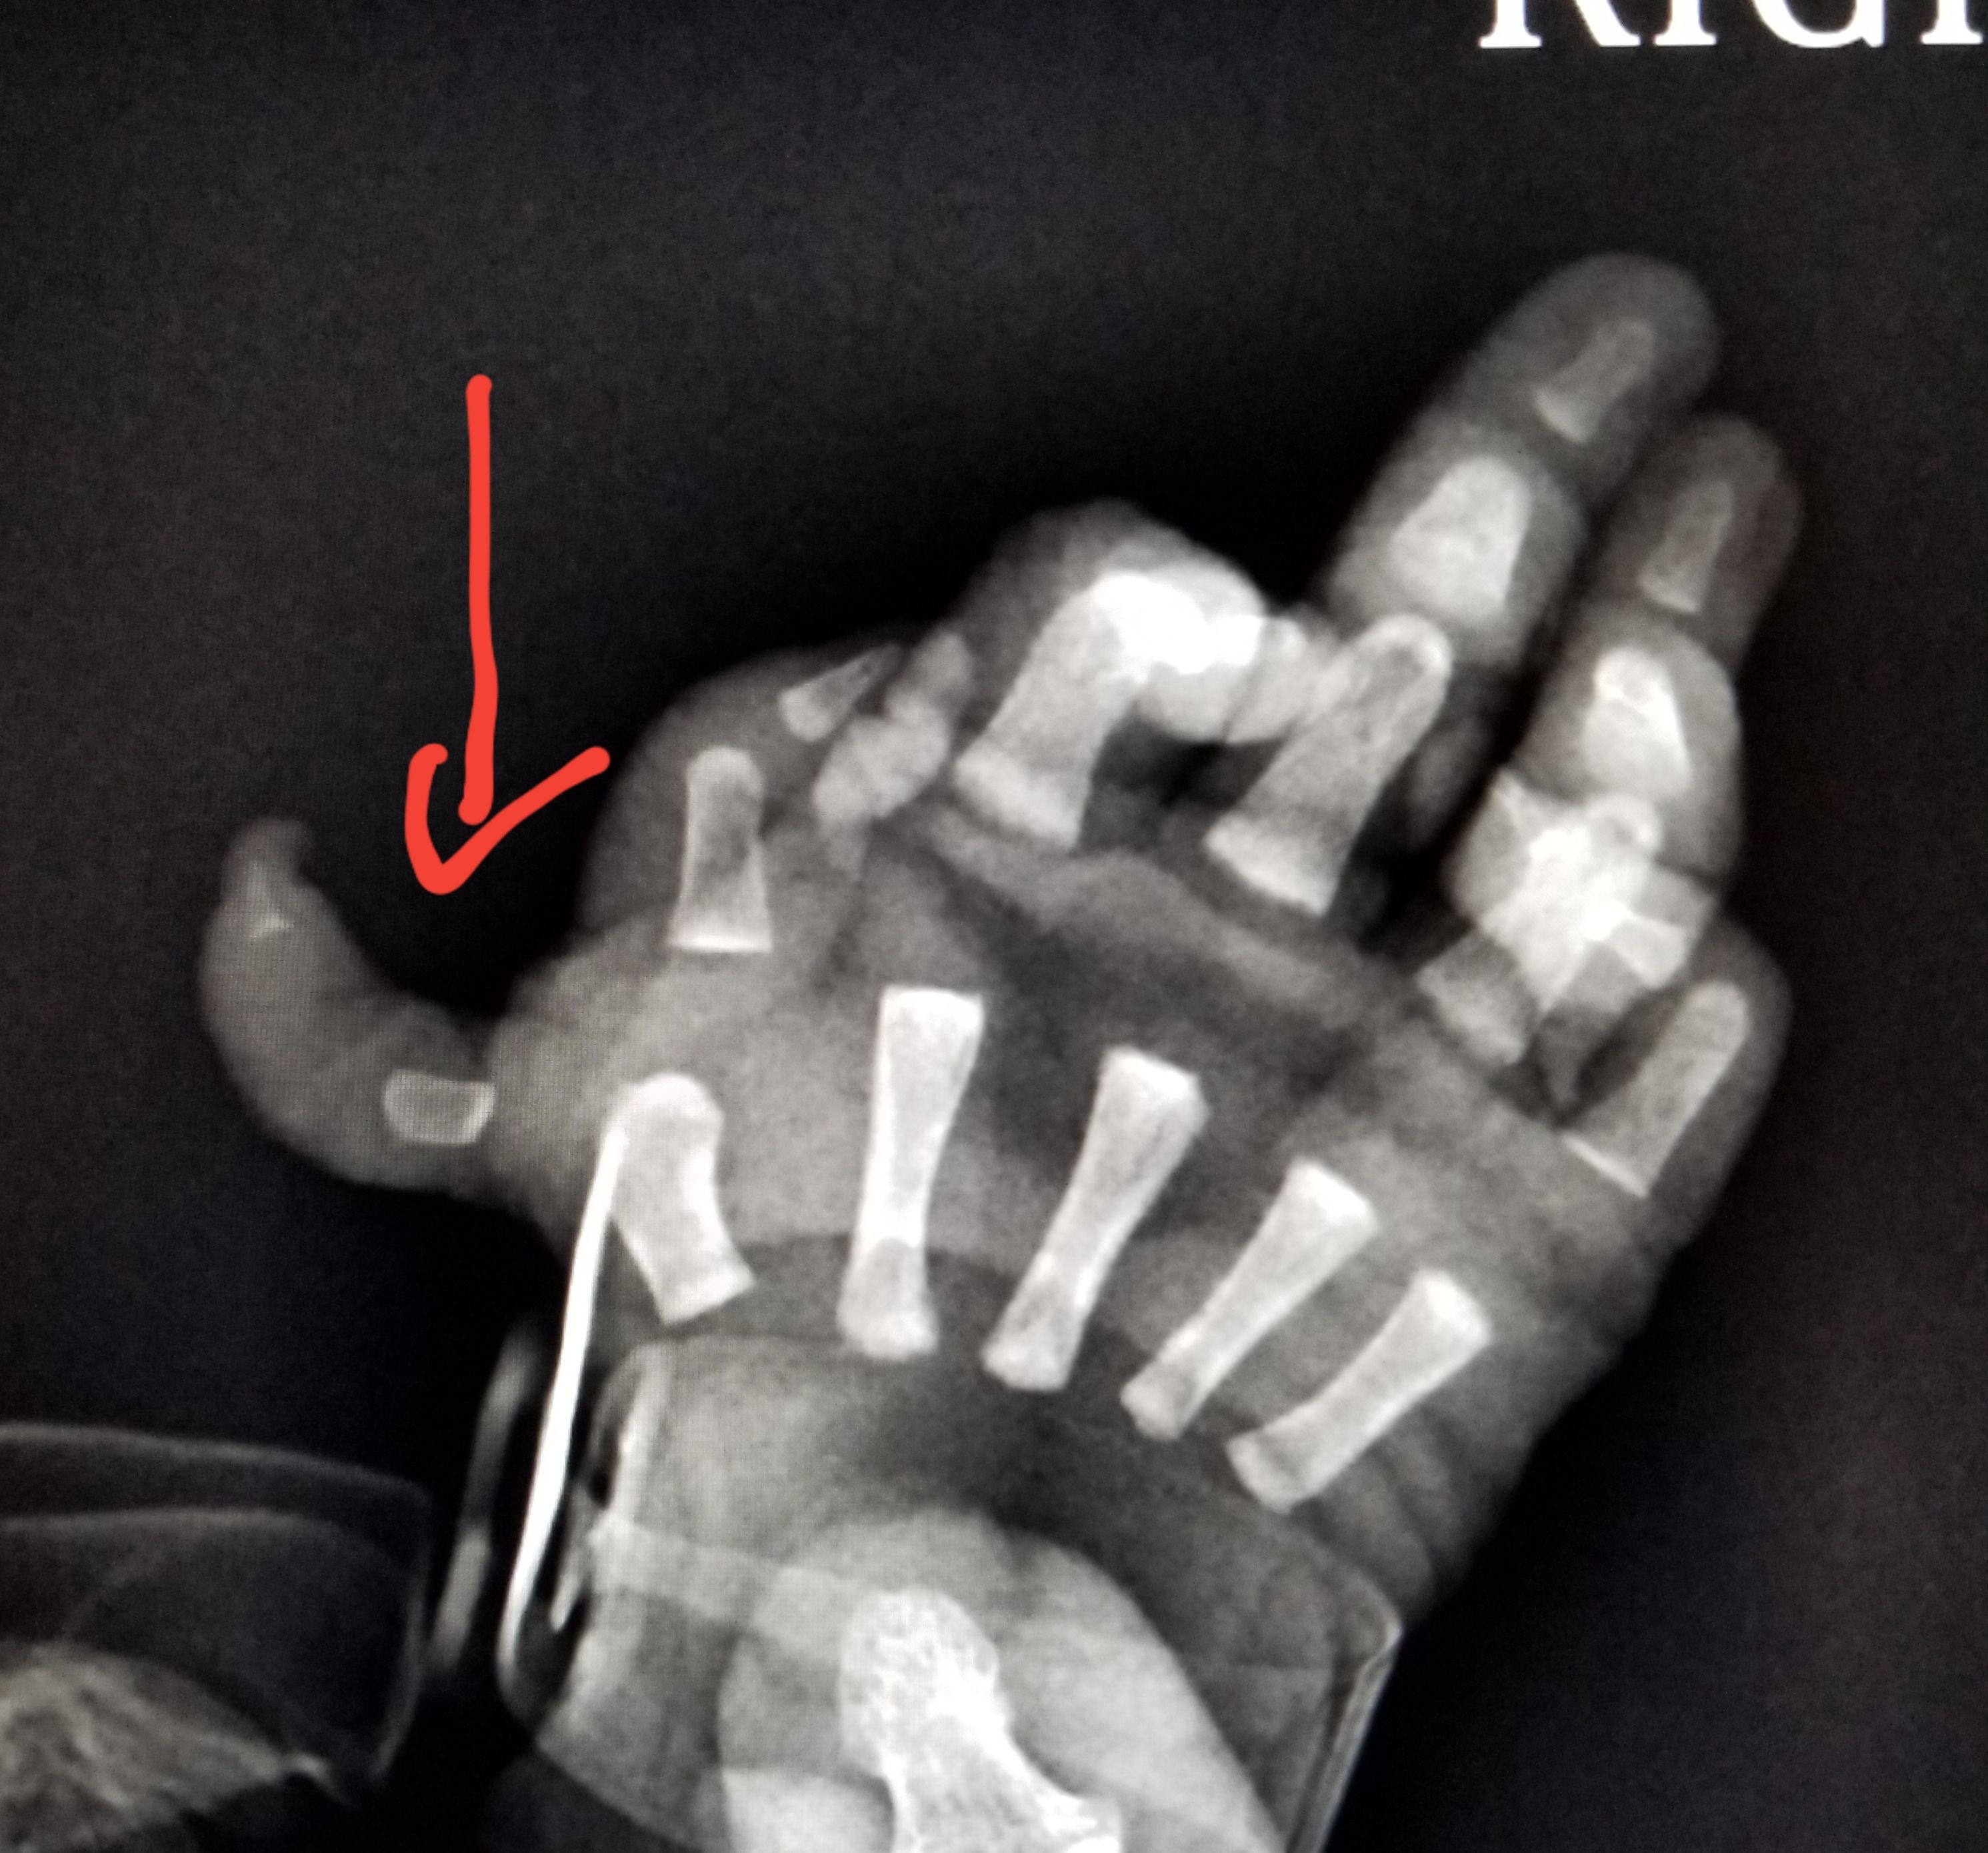 Baby Newborn Xray Hand Xray In An Infant Shows An Extra Finger